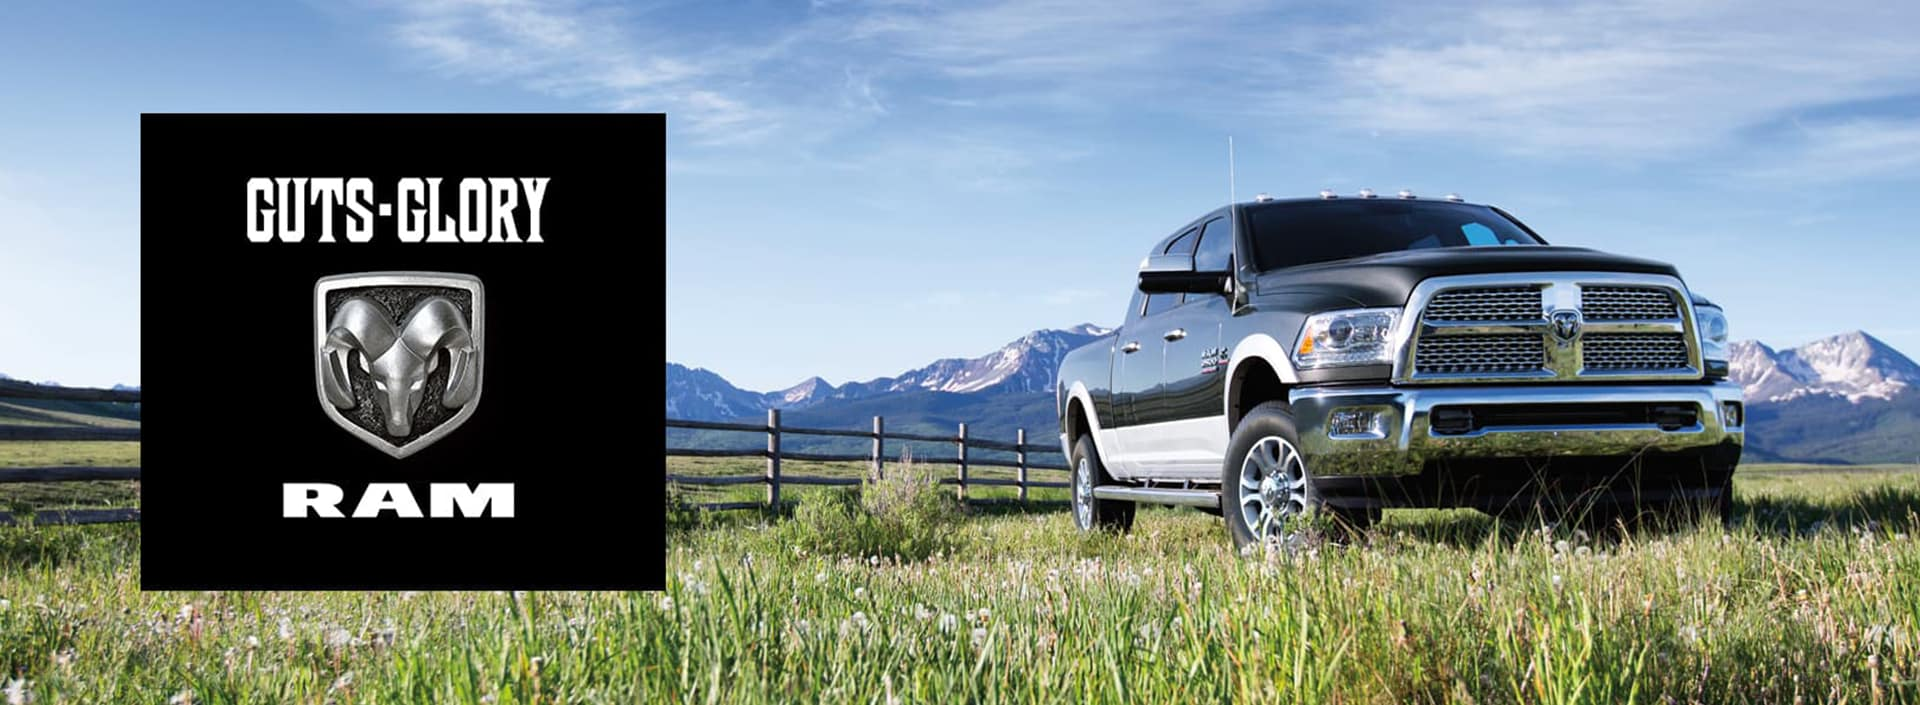 A Ram 1500 parked on farm land with mountains in the background.